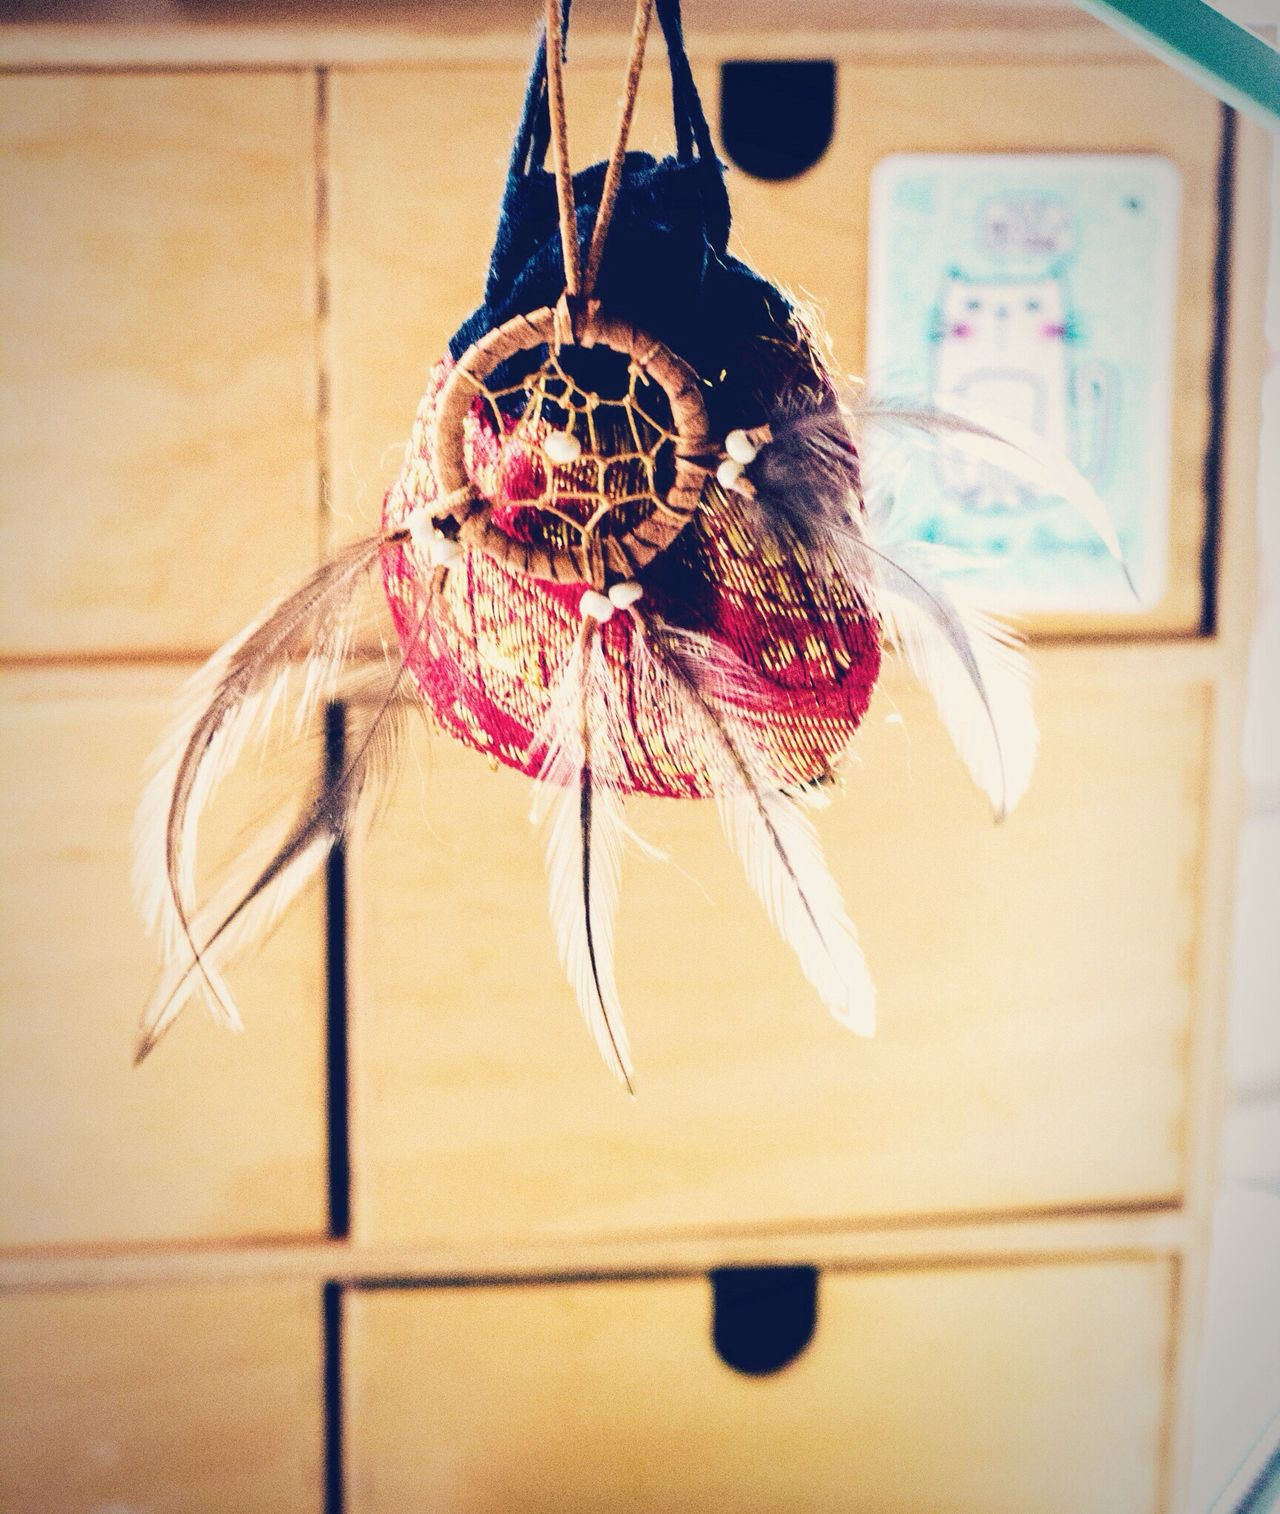 Lieblingsteil Dreaming Dreamcatcher Dream Catcher Daydreaming Daydream